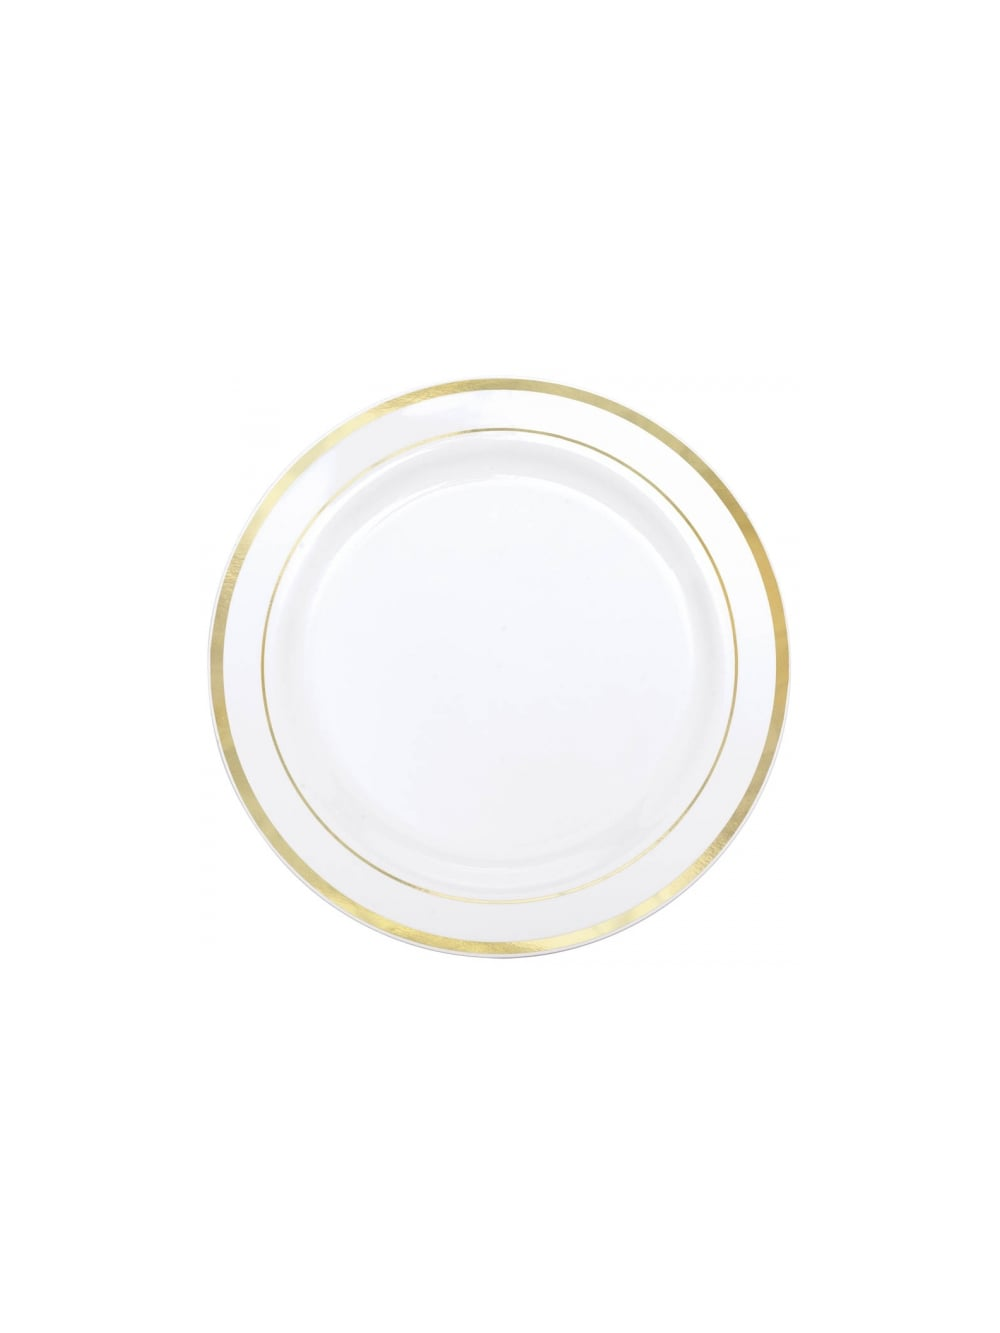 Premium White Plastic Plates Gold Trim  sc 1 st  Hen Party Superstore & Premium White Plastic Plates Gold Trim - Partyware u0026 Decorations ...